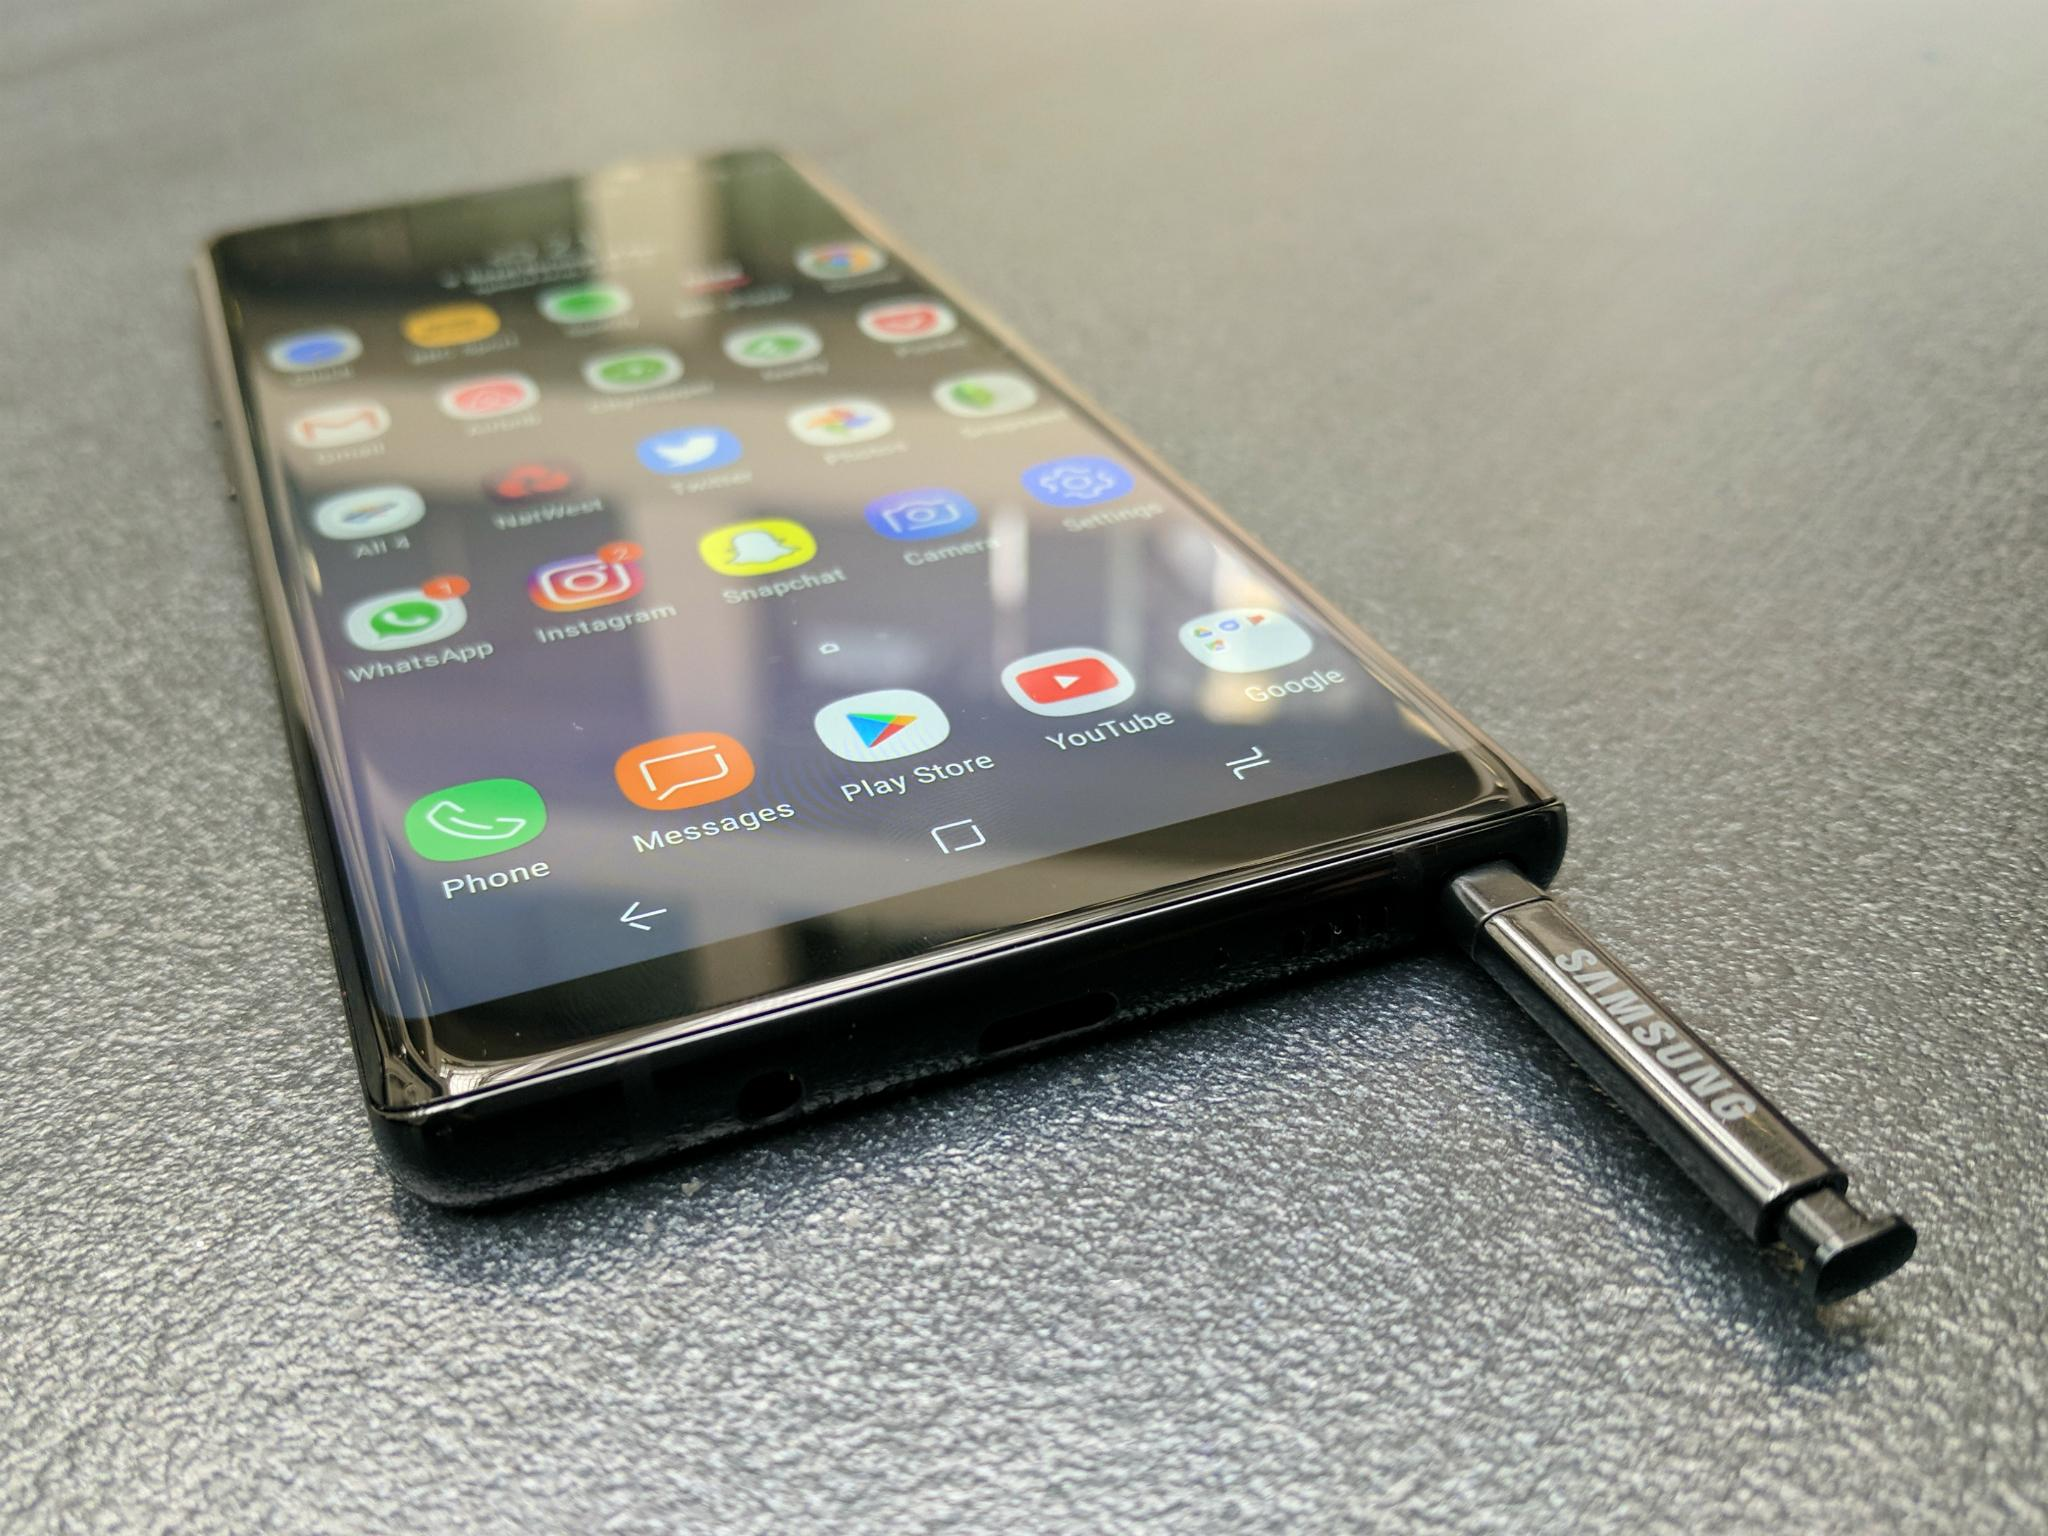 Samsung Galaxy Note 8 Best And Worst Features Of The New Smartphone Cellphone Detector Circuit Youtube Price